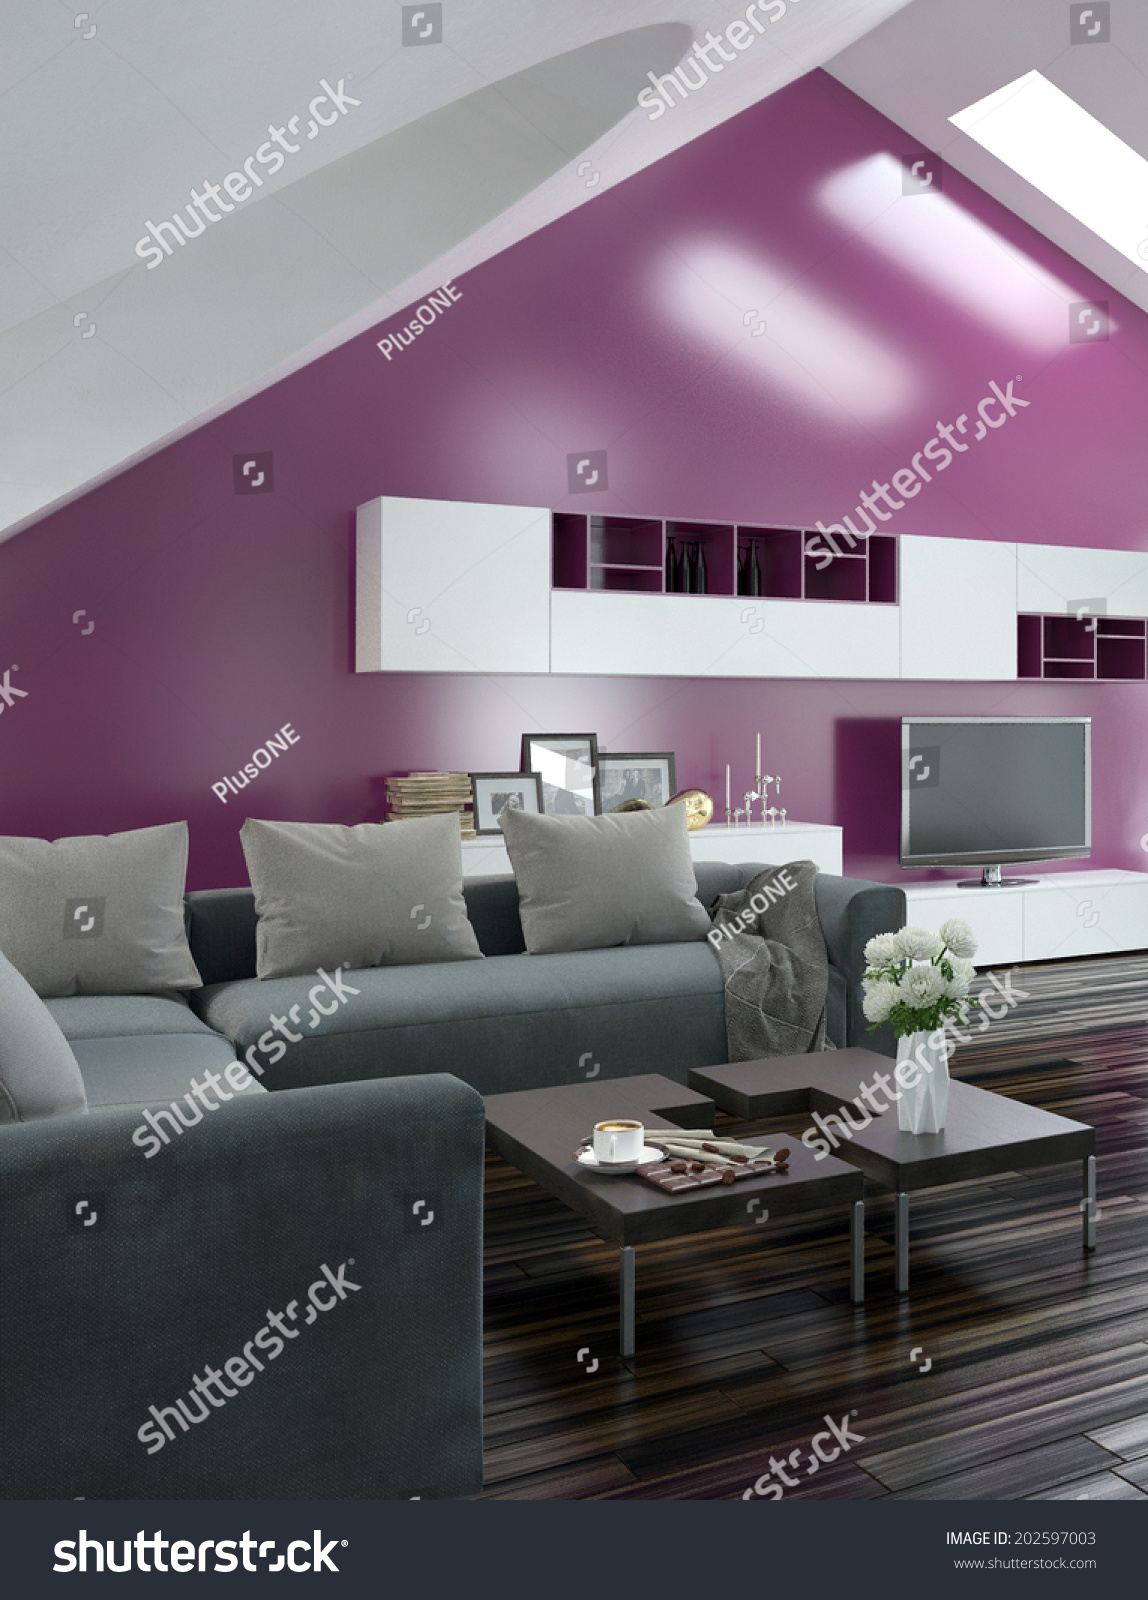 Modern Apartment Living Room Interior With A Purple Accent Wall And Sloping  Ceiling With Skylights Above A Parquet Floor And Modern Grey Lounge Suite  With ...